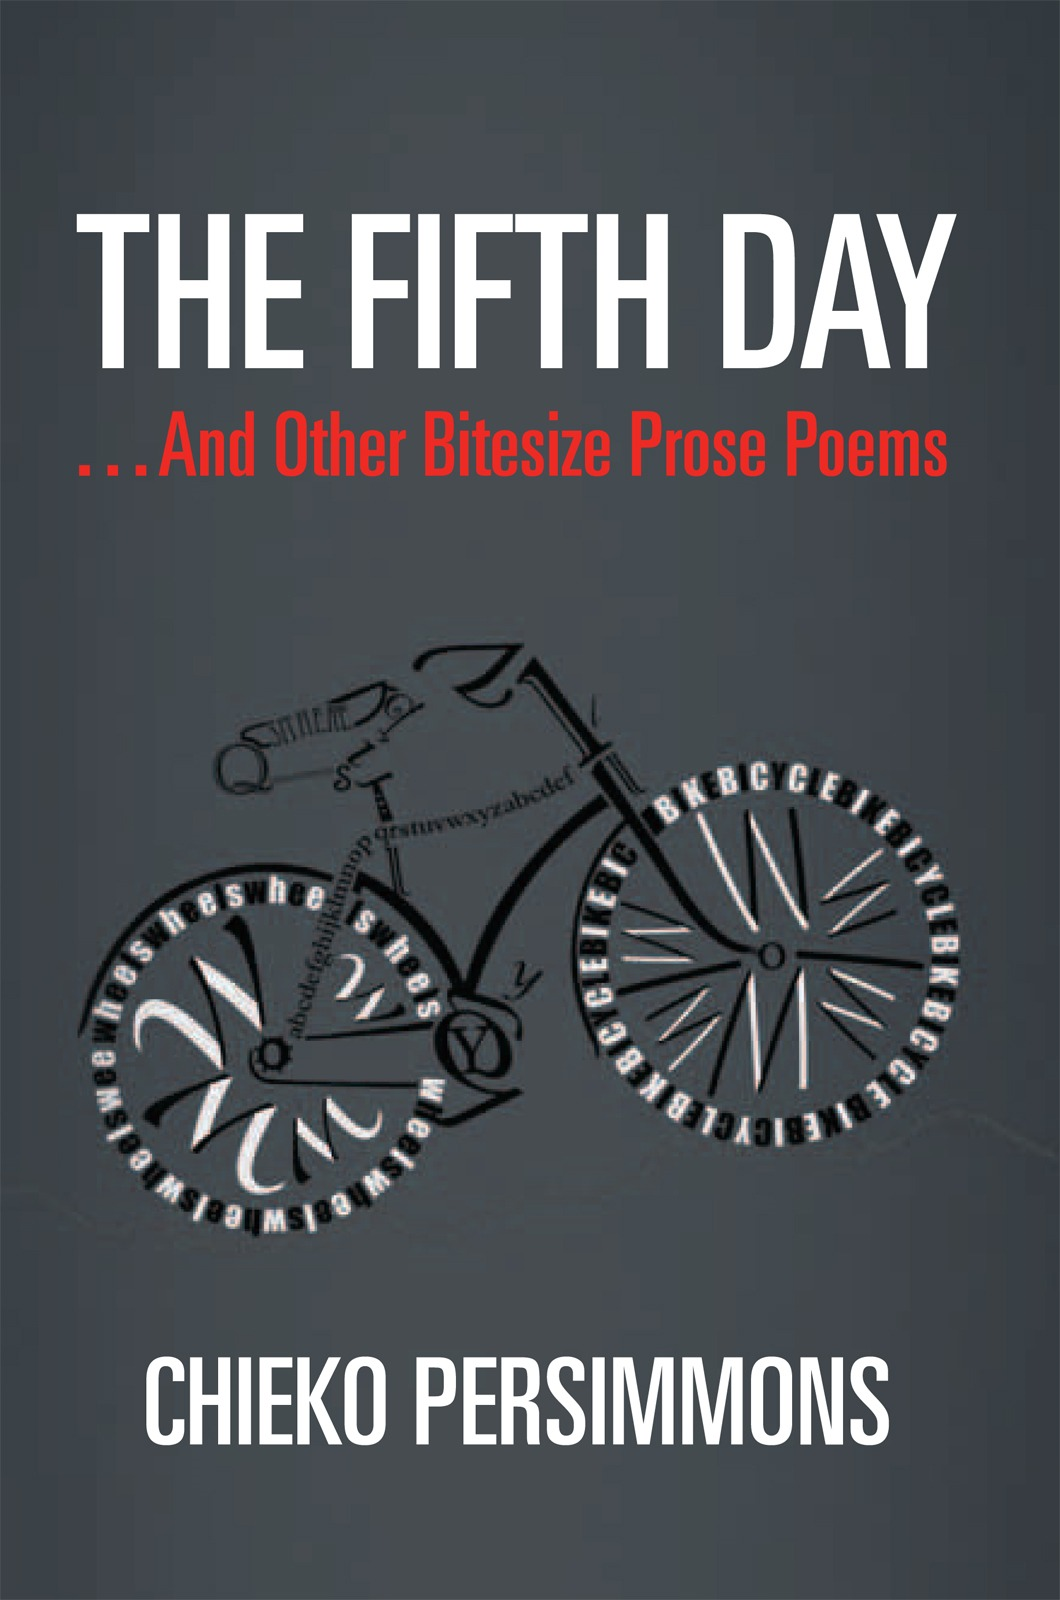 The Fifth Day . . .  And Other Bitesize Prose Poems